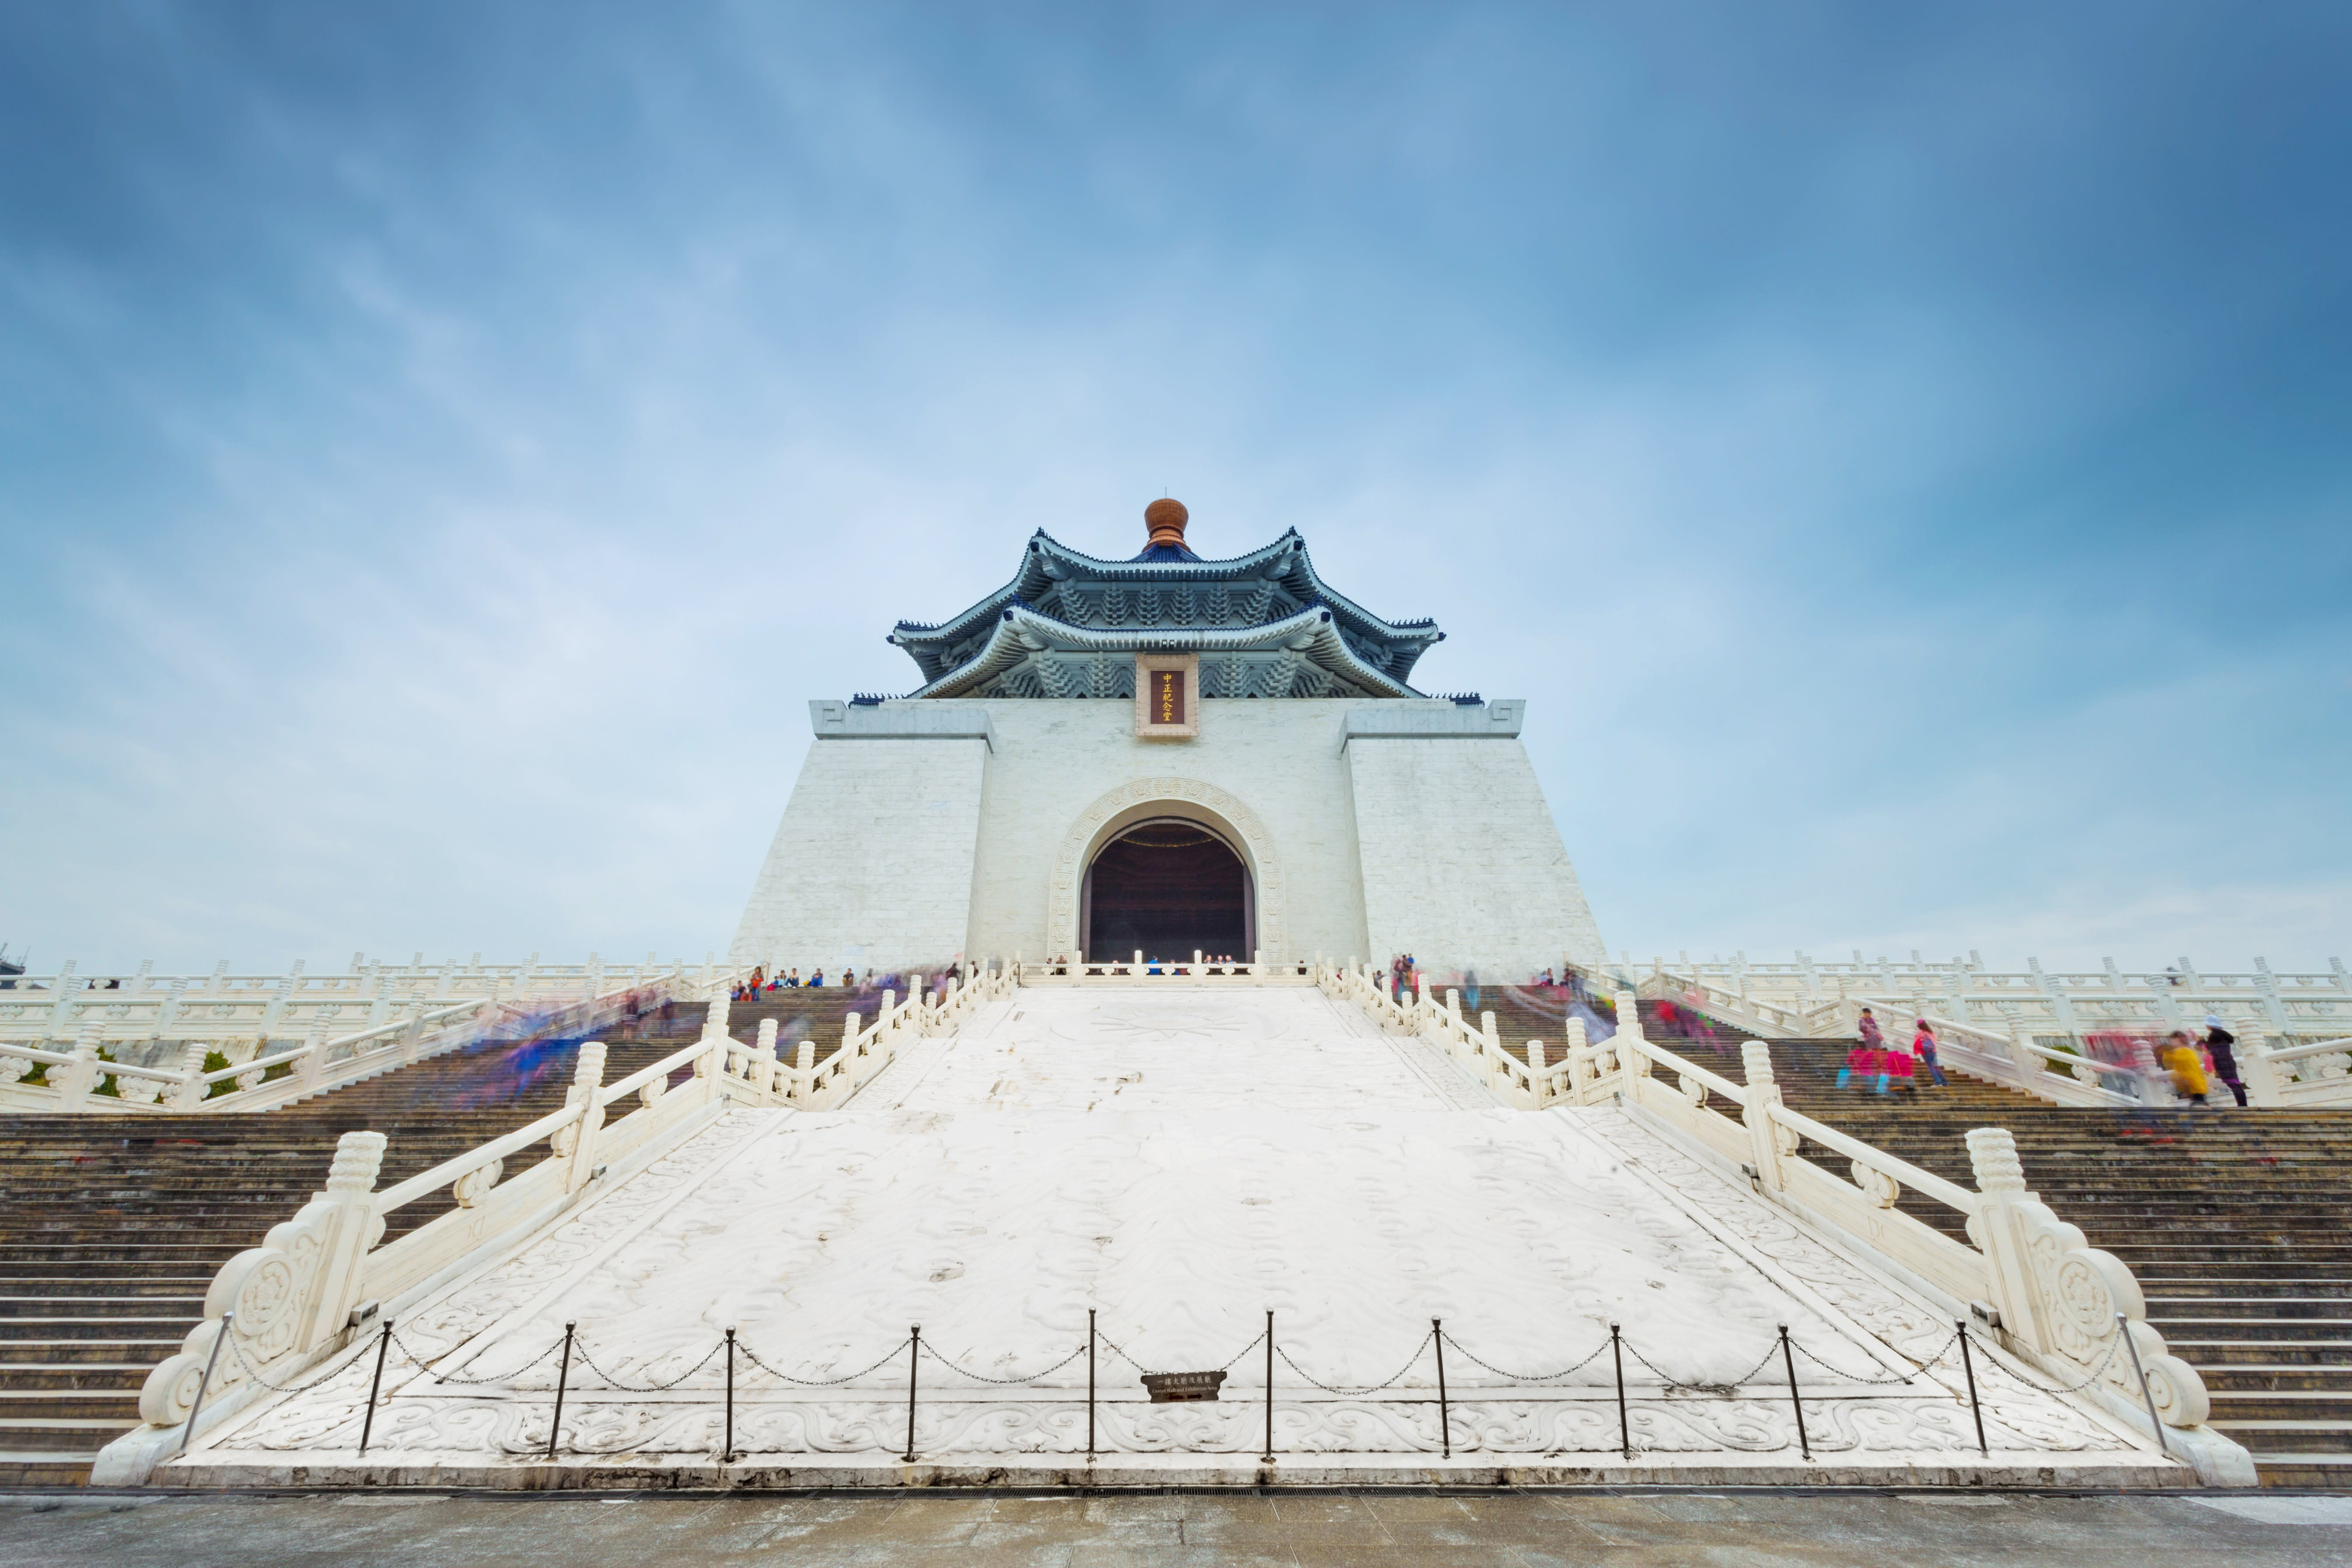 Let our guide teach you about Taiwan's history at monuments like Chiang Kai Shek Memorial Hall